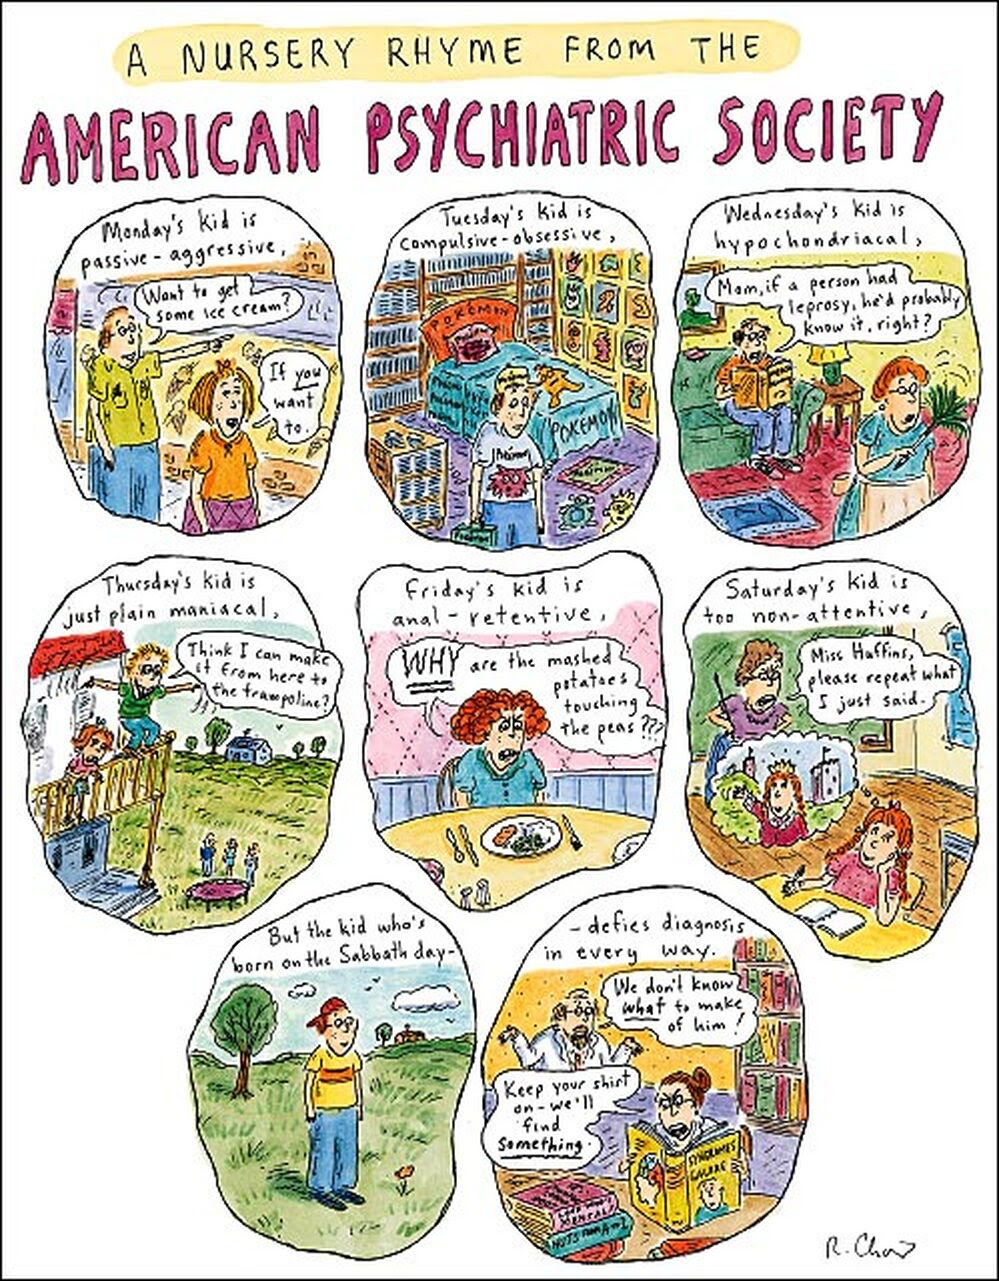 Enlarge to see the entire Roz Chast cartoon